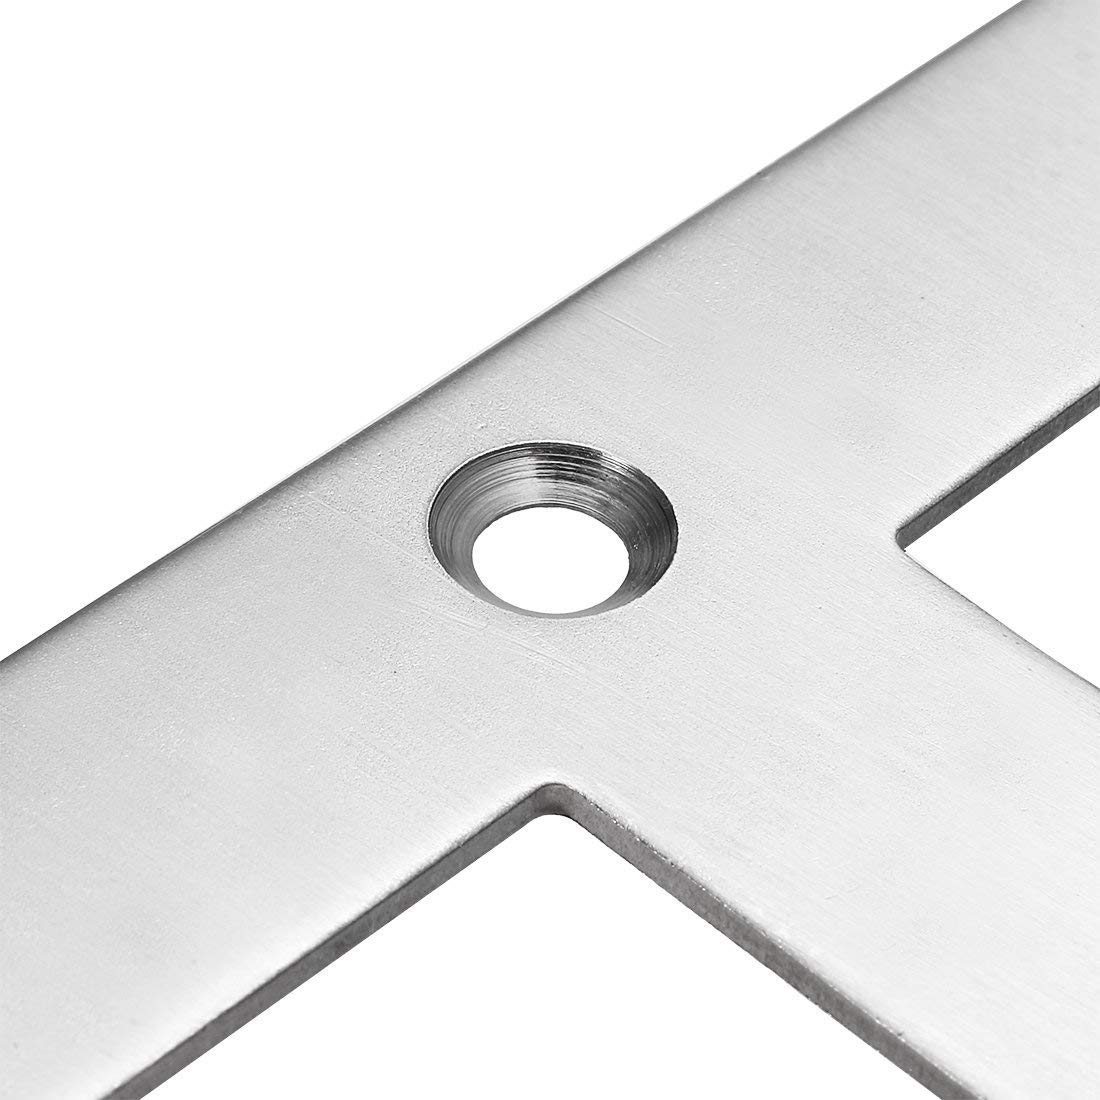 Joint Fastener Windows Cyful Heavy Duty Stainless Steel Flat Plate T Shape 90 Degree Angle Corner Brace Screens Chests Brushed Finish,120mmx120mm//4.7-inch x 4.7 Shelf Support for Wood Furniture